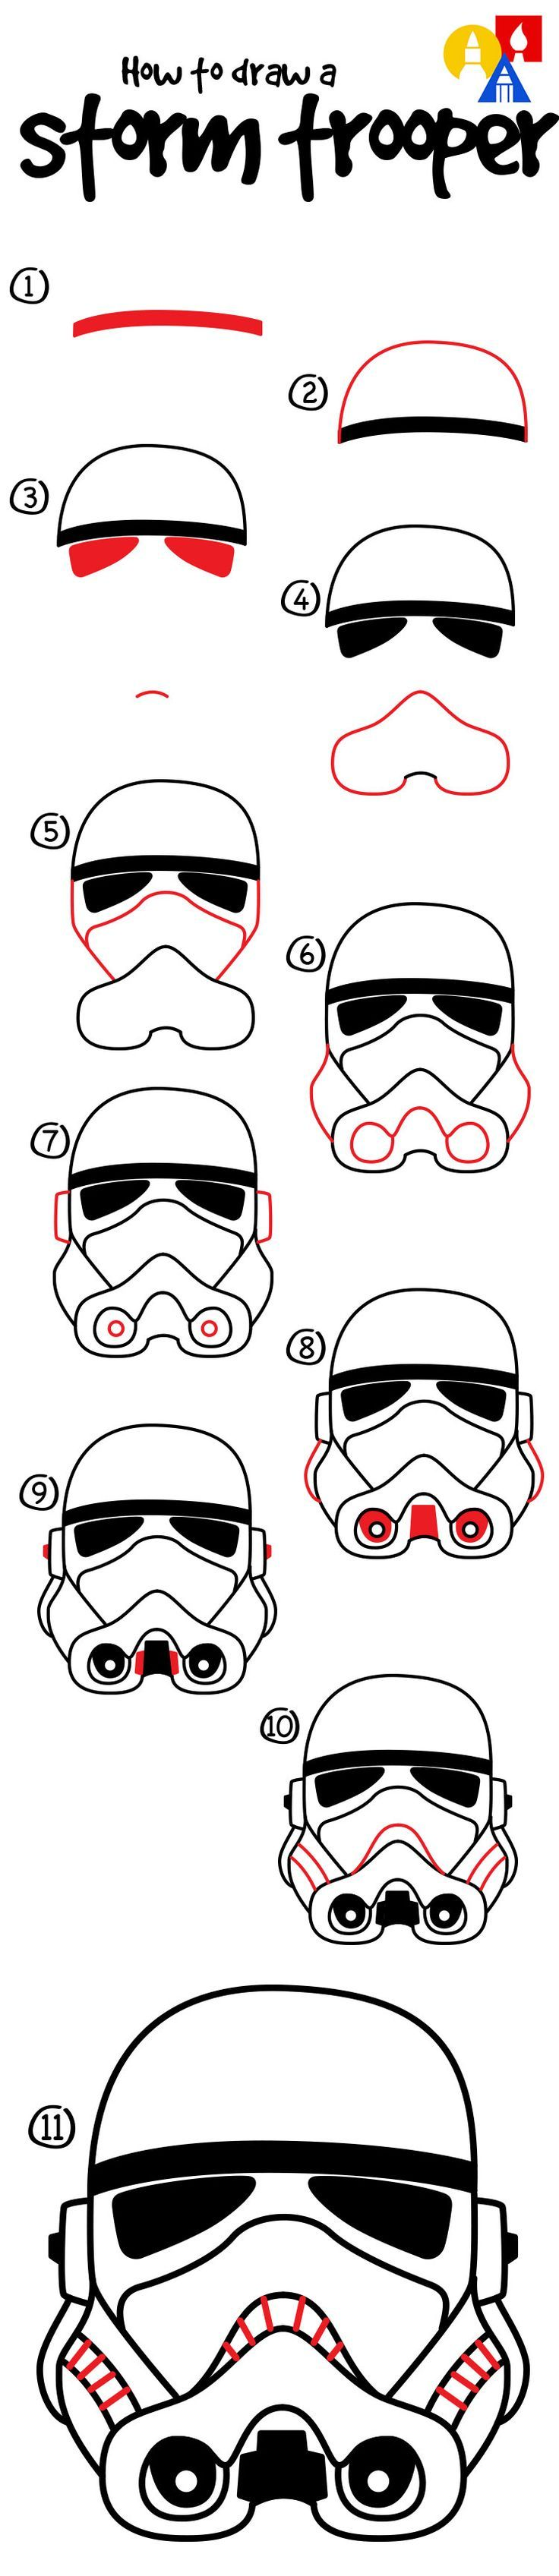 Learn how to draw a stormtrooper helmet!